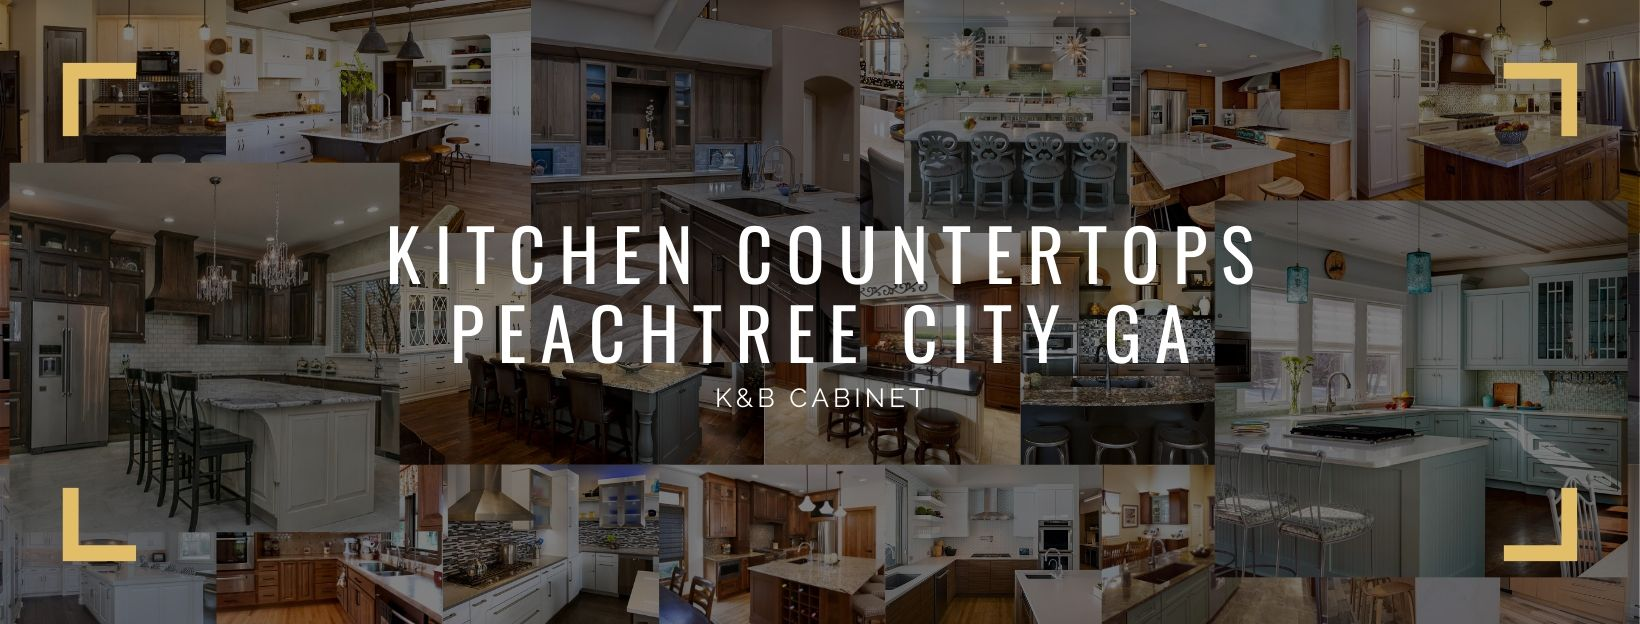 Kitchen Countertops Peachtree City GA